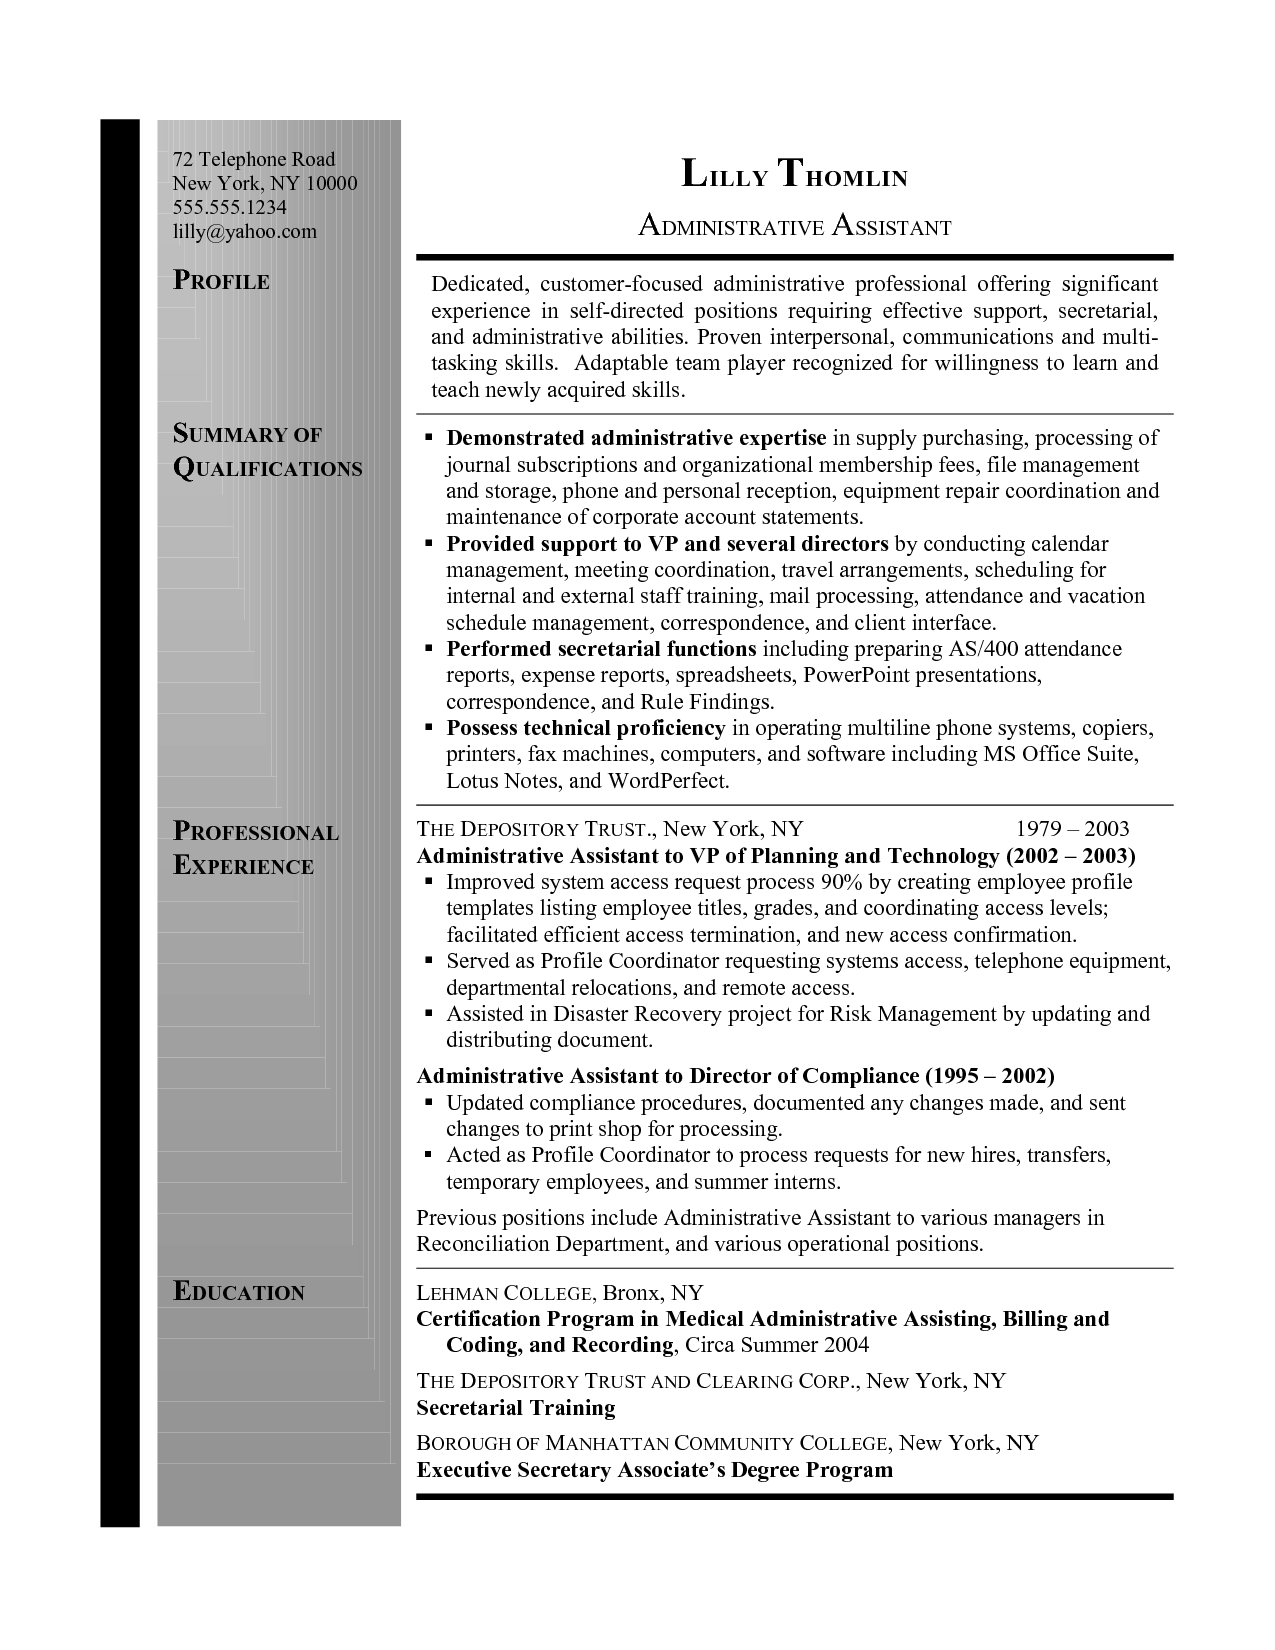 resume summary administrative assistant administrative secretary resume example is a sample resume for executive assistant secretarial work in the banking industry